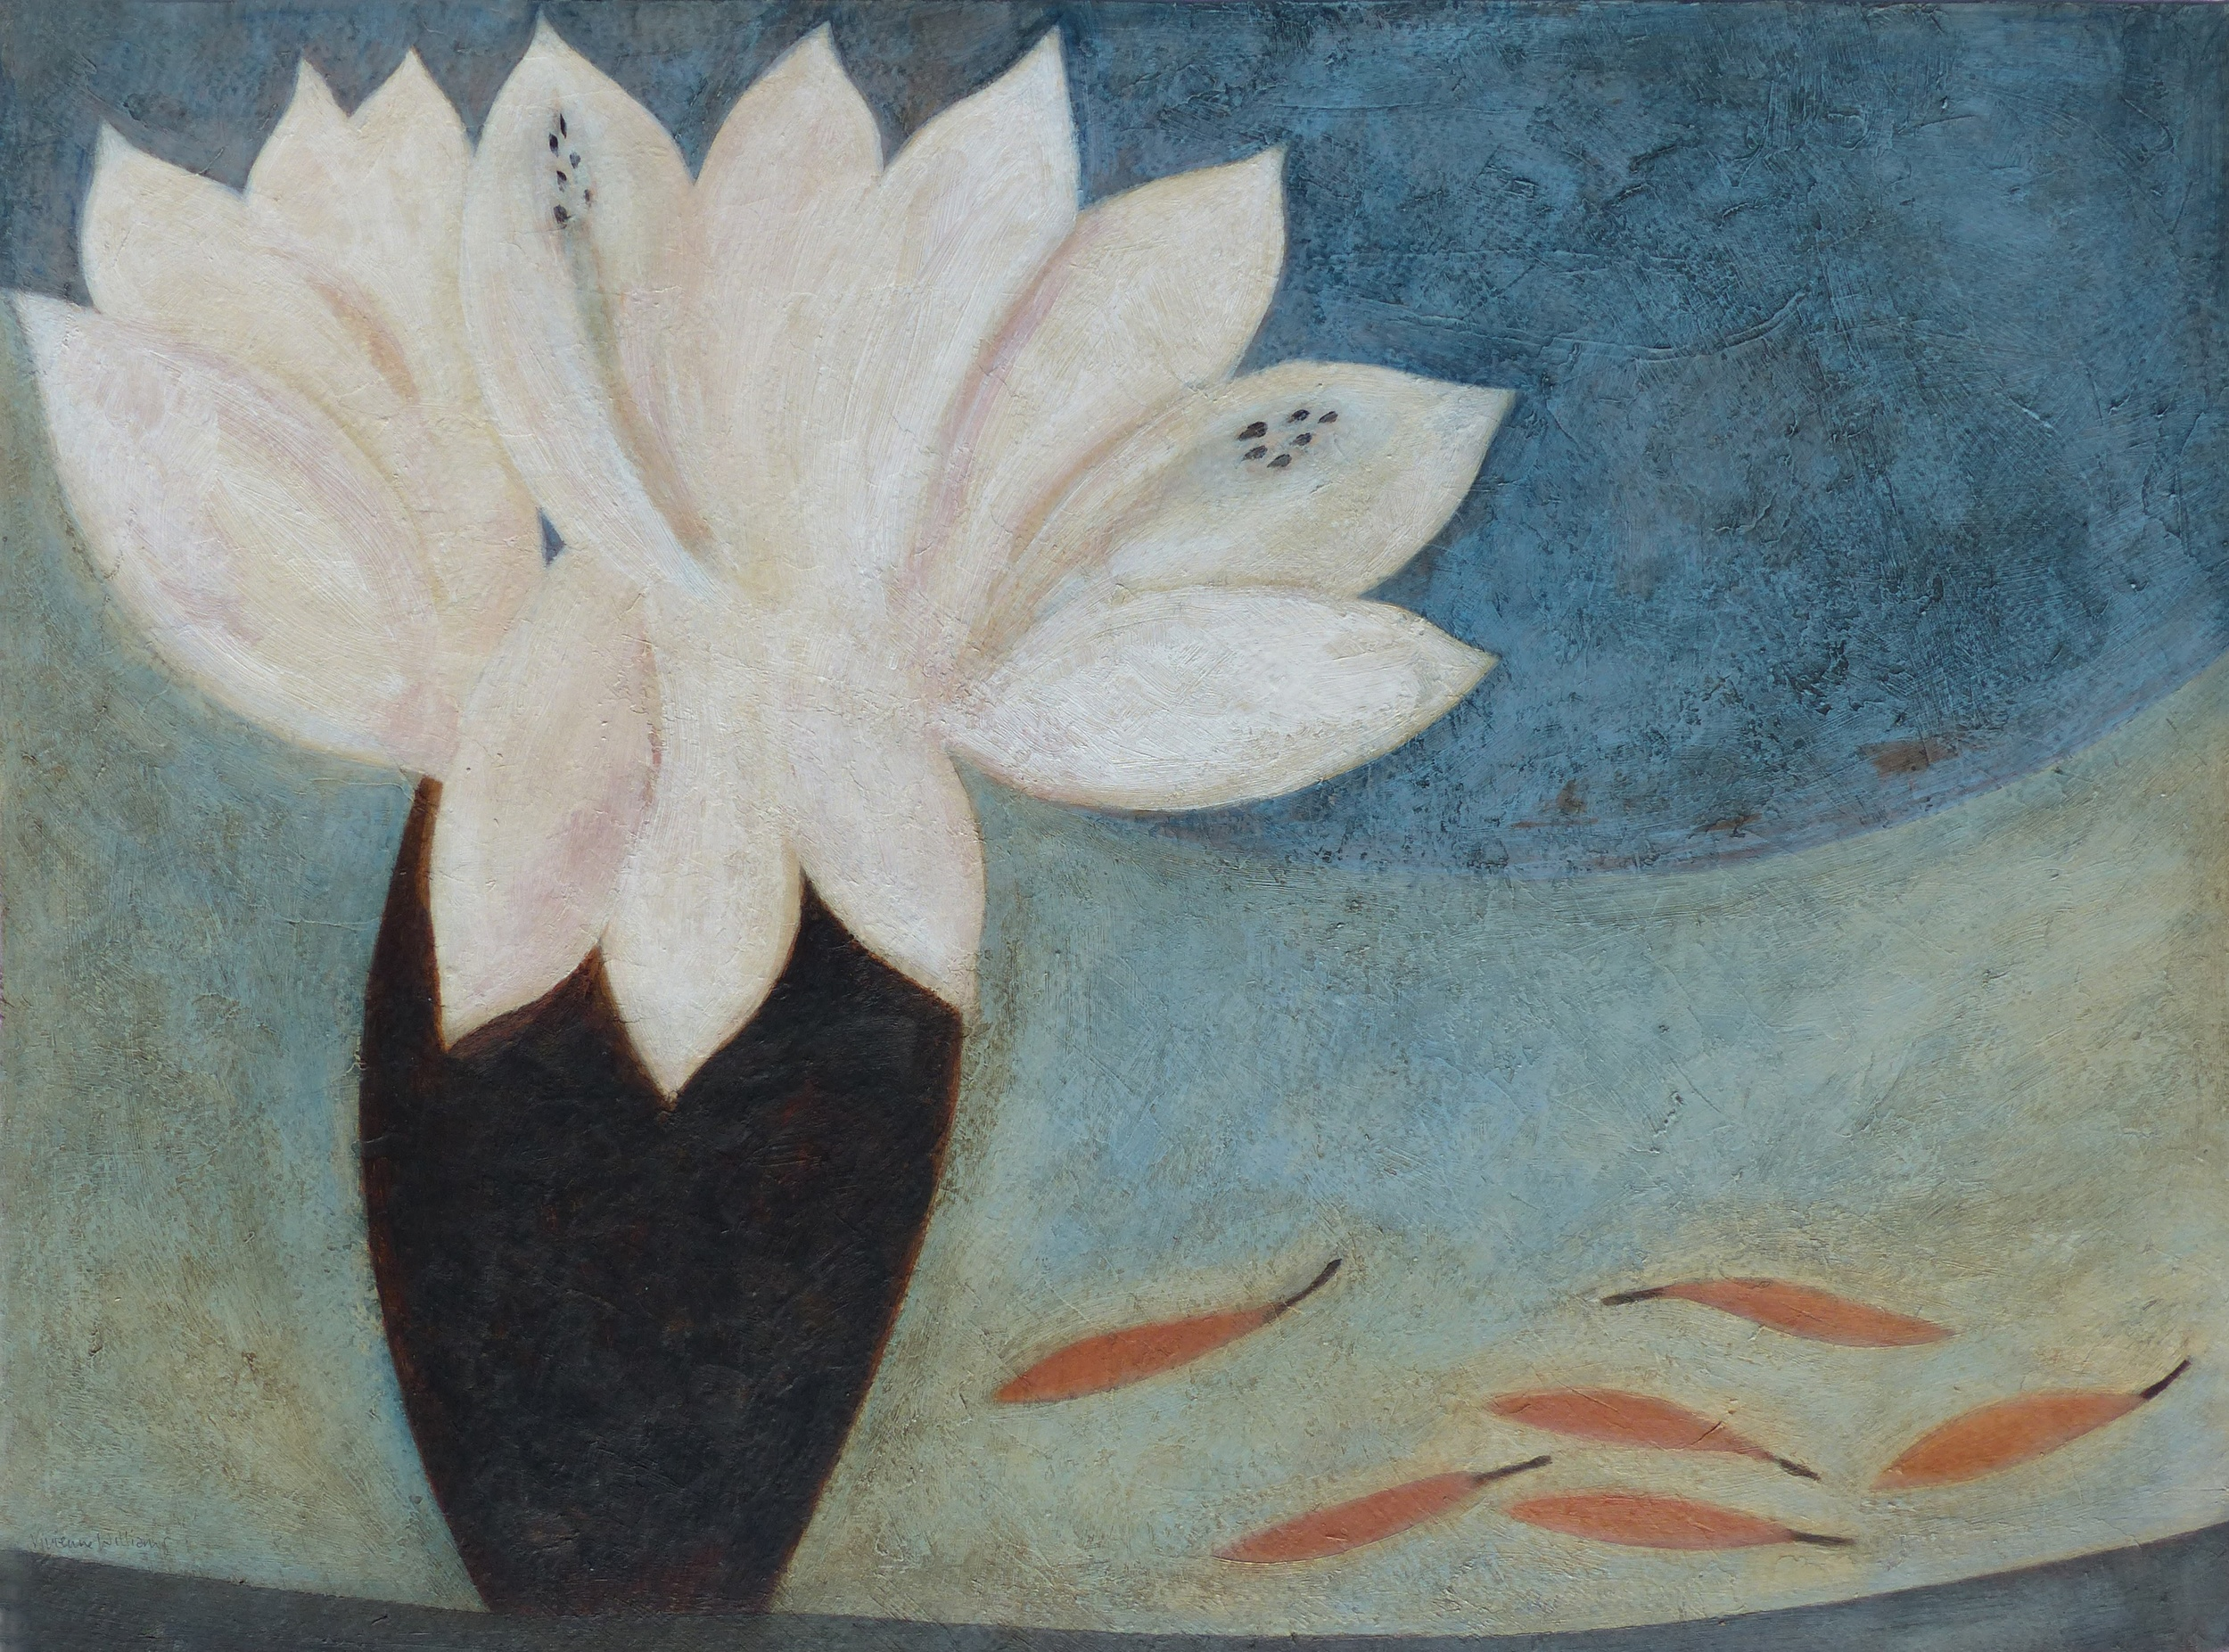 Lilies and Chillies, 46cm x 61cm, 2015